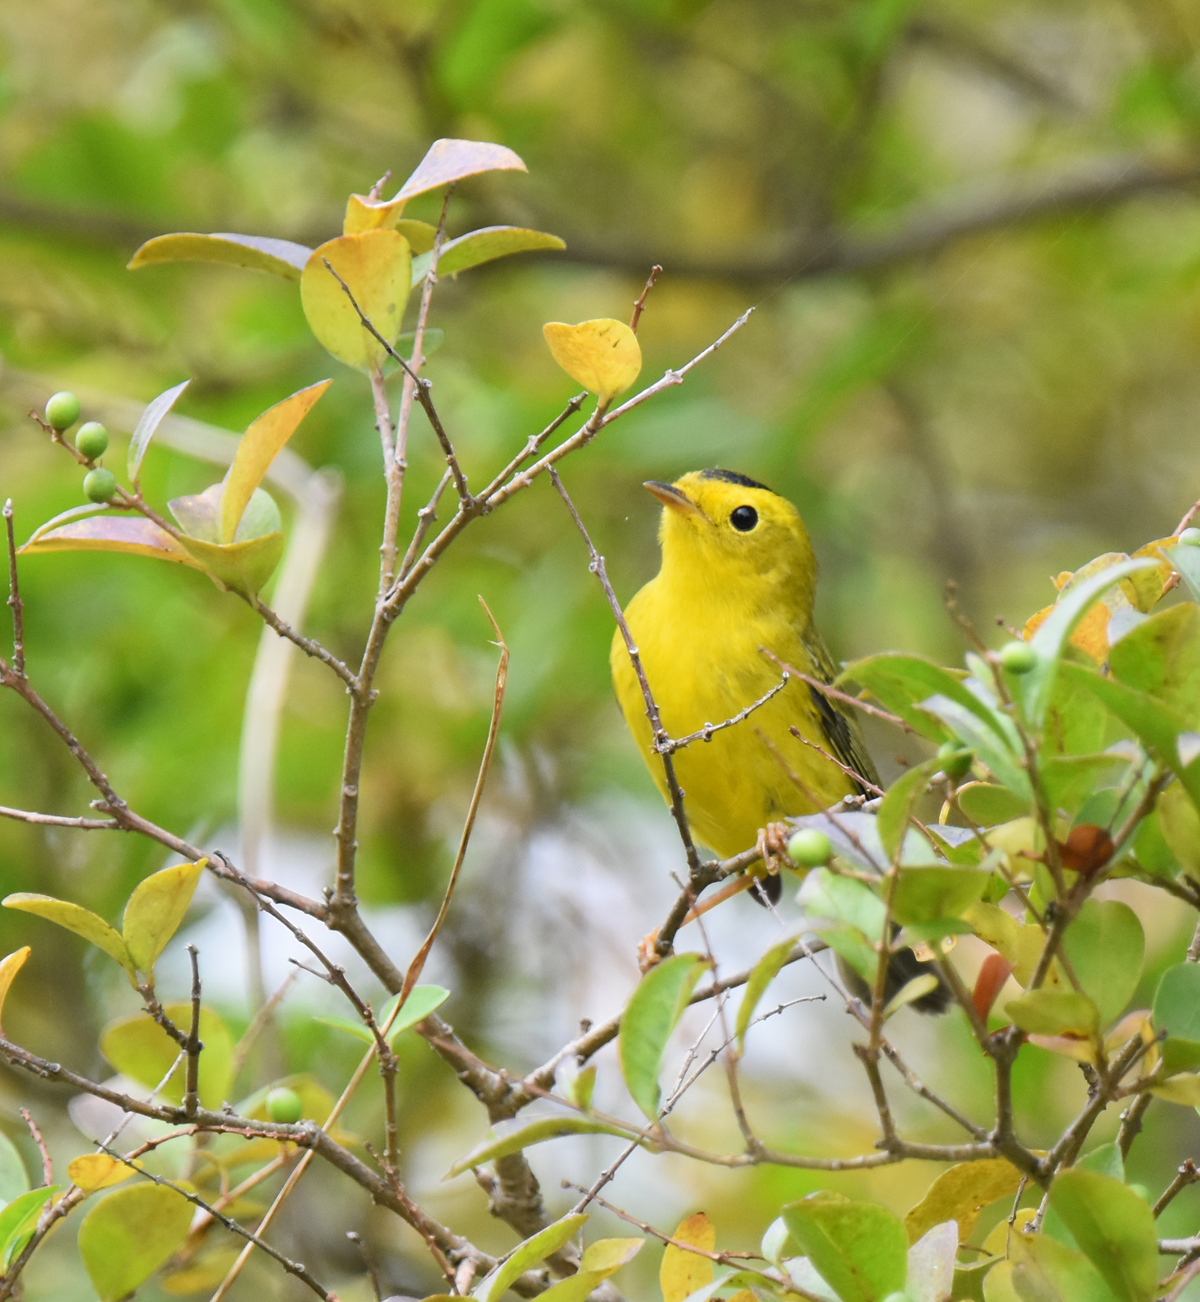 Photo of Wilsons Warbler B Urquhart on NaturalCrooksDotCom